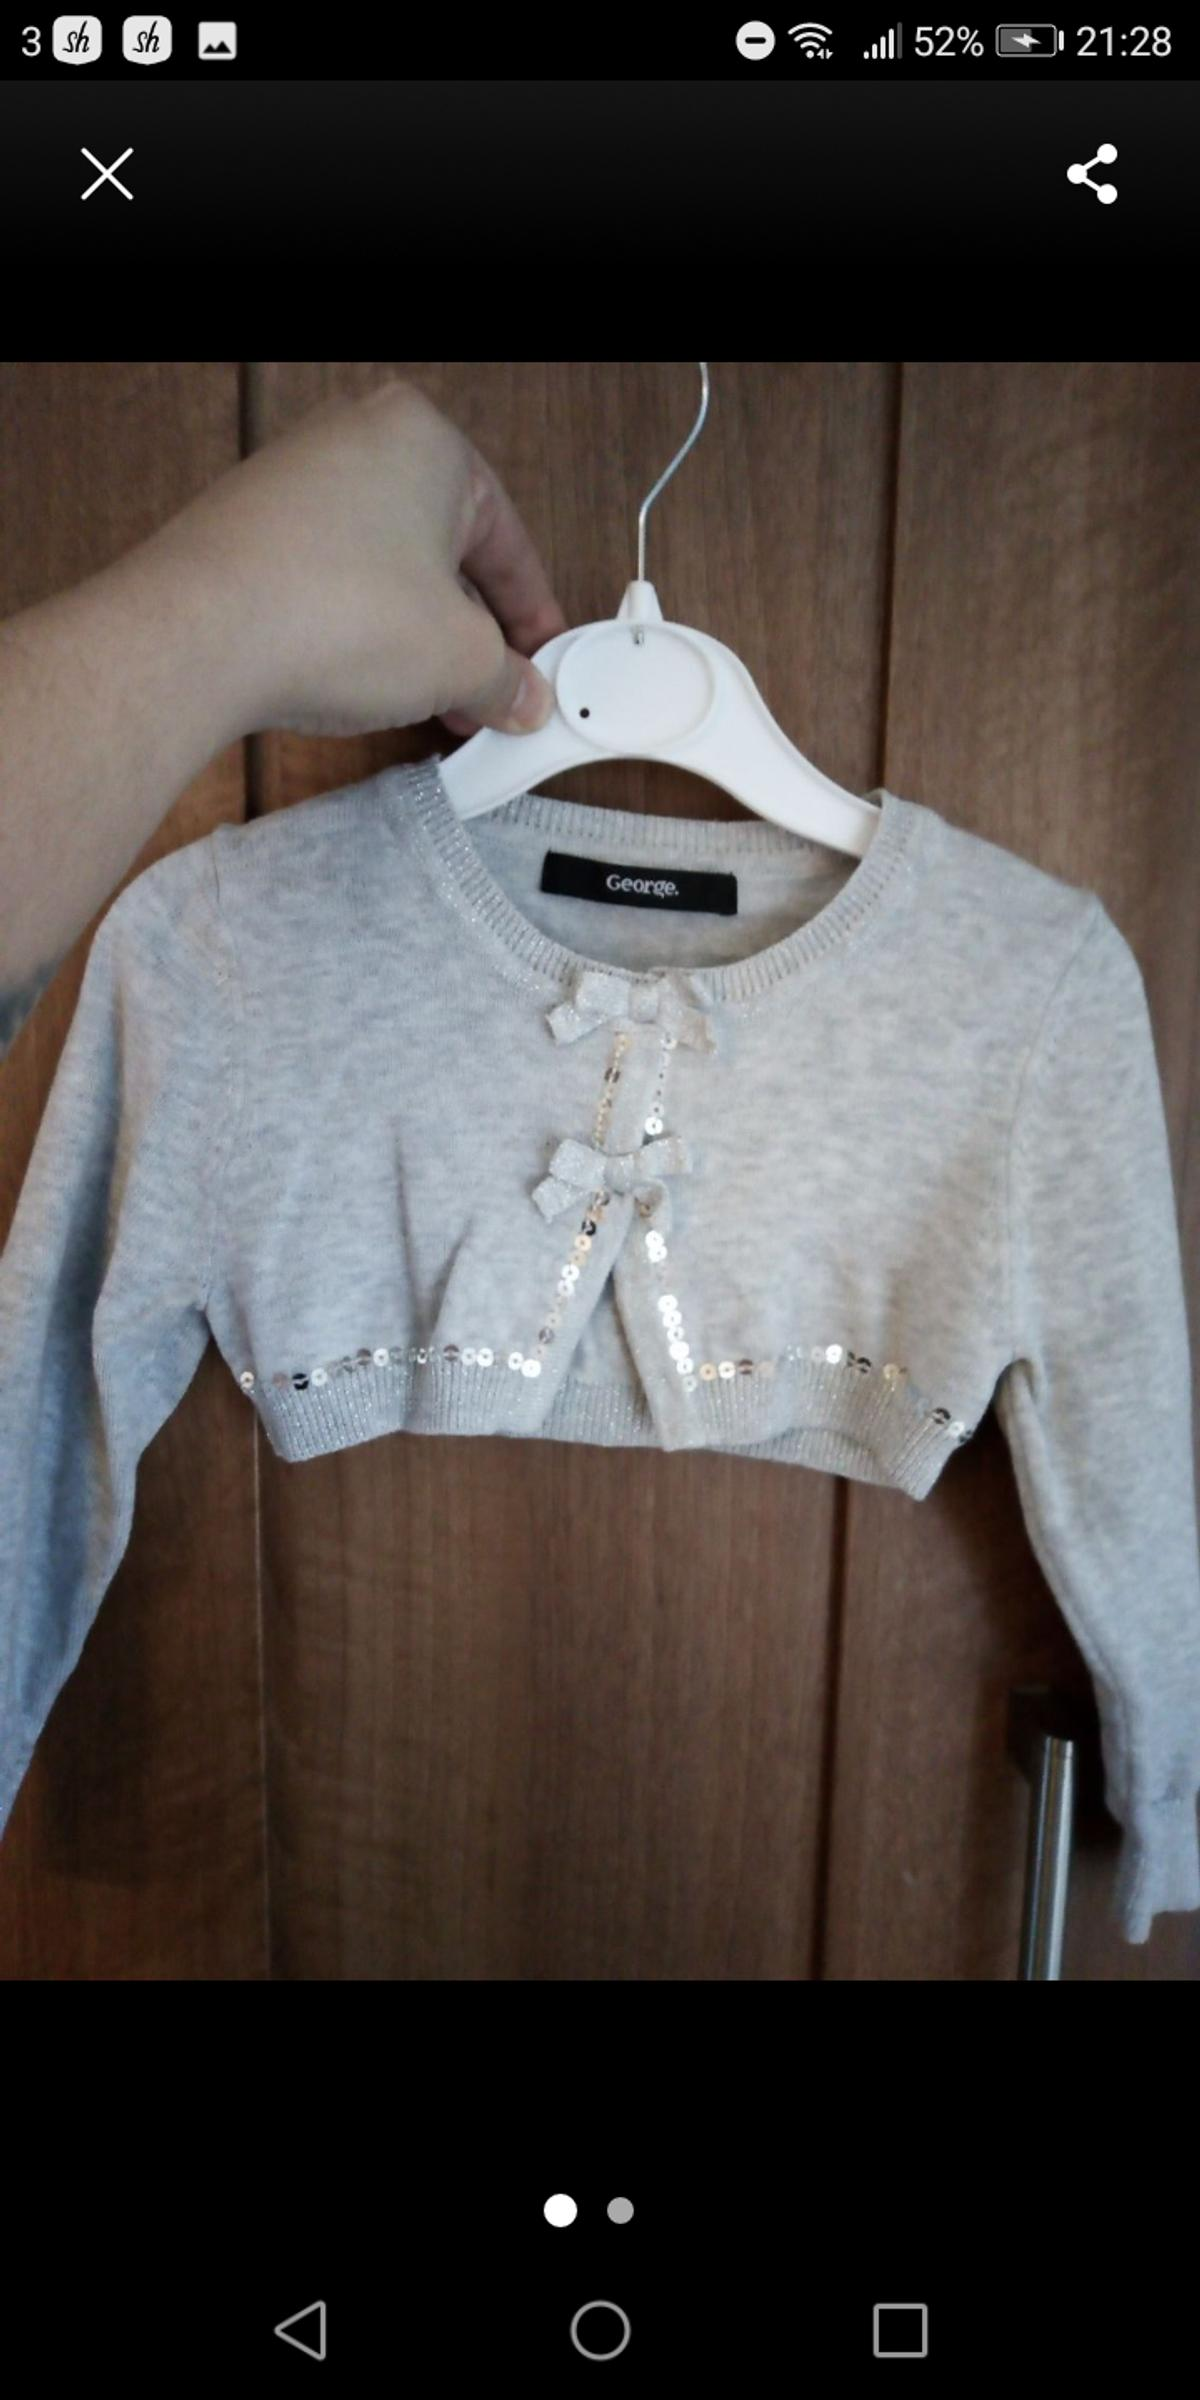 ab16d974d7927 ASDA George toddler bolero Age 2-3 years in WA6 Frodsham for £1.00 ...